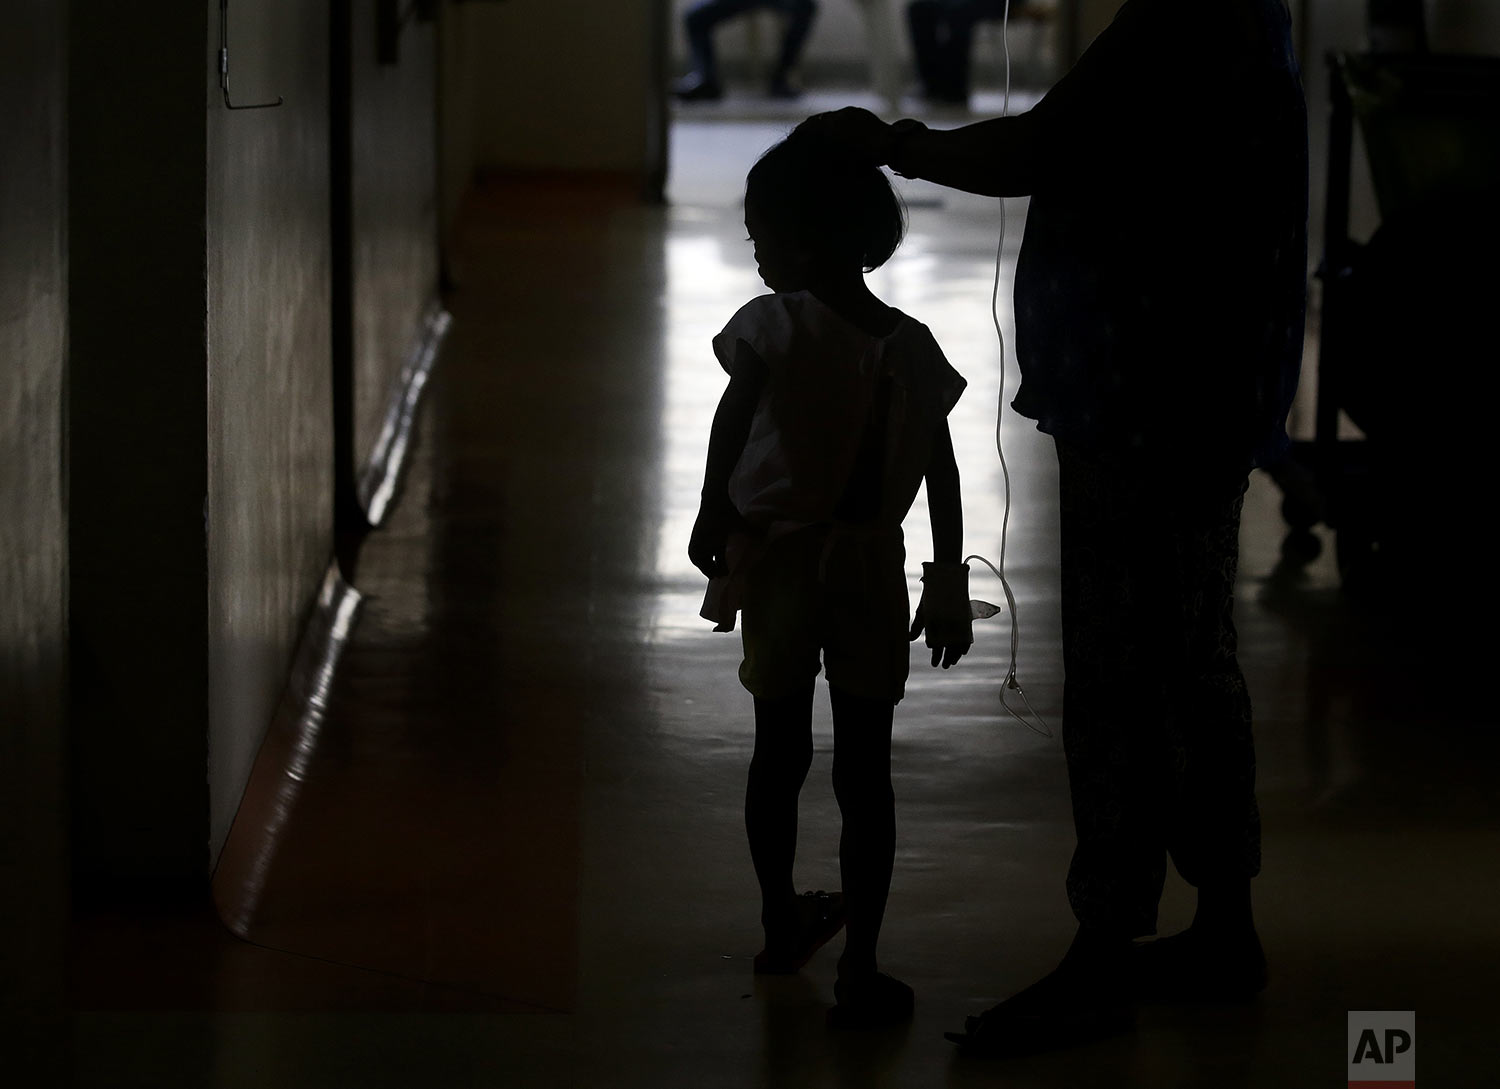 A young dengue patient walks inside the San Lazaro government hospital in Manila, Philippines on Wednesday, Aug. 7, 2019. (AP Photo/Aaron Favila)